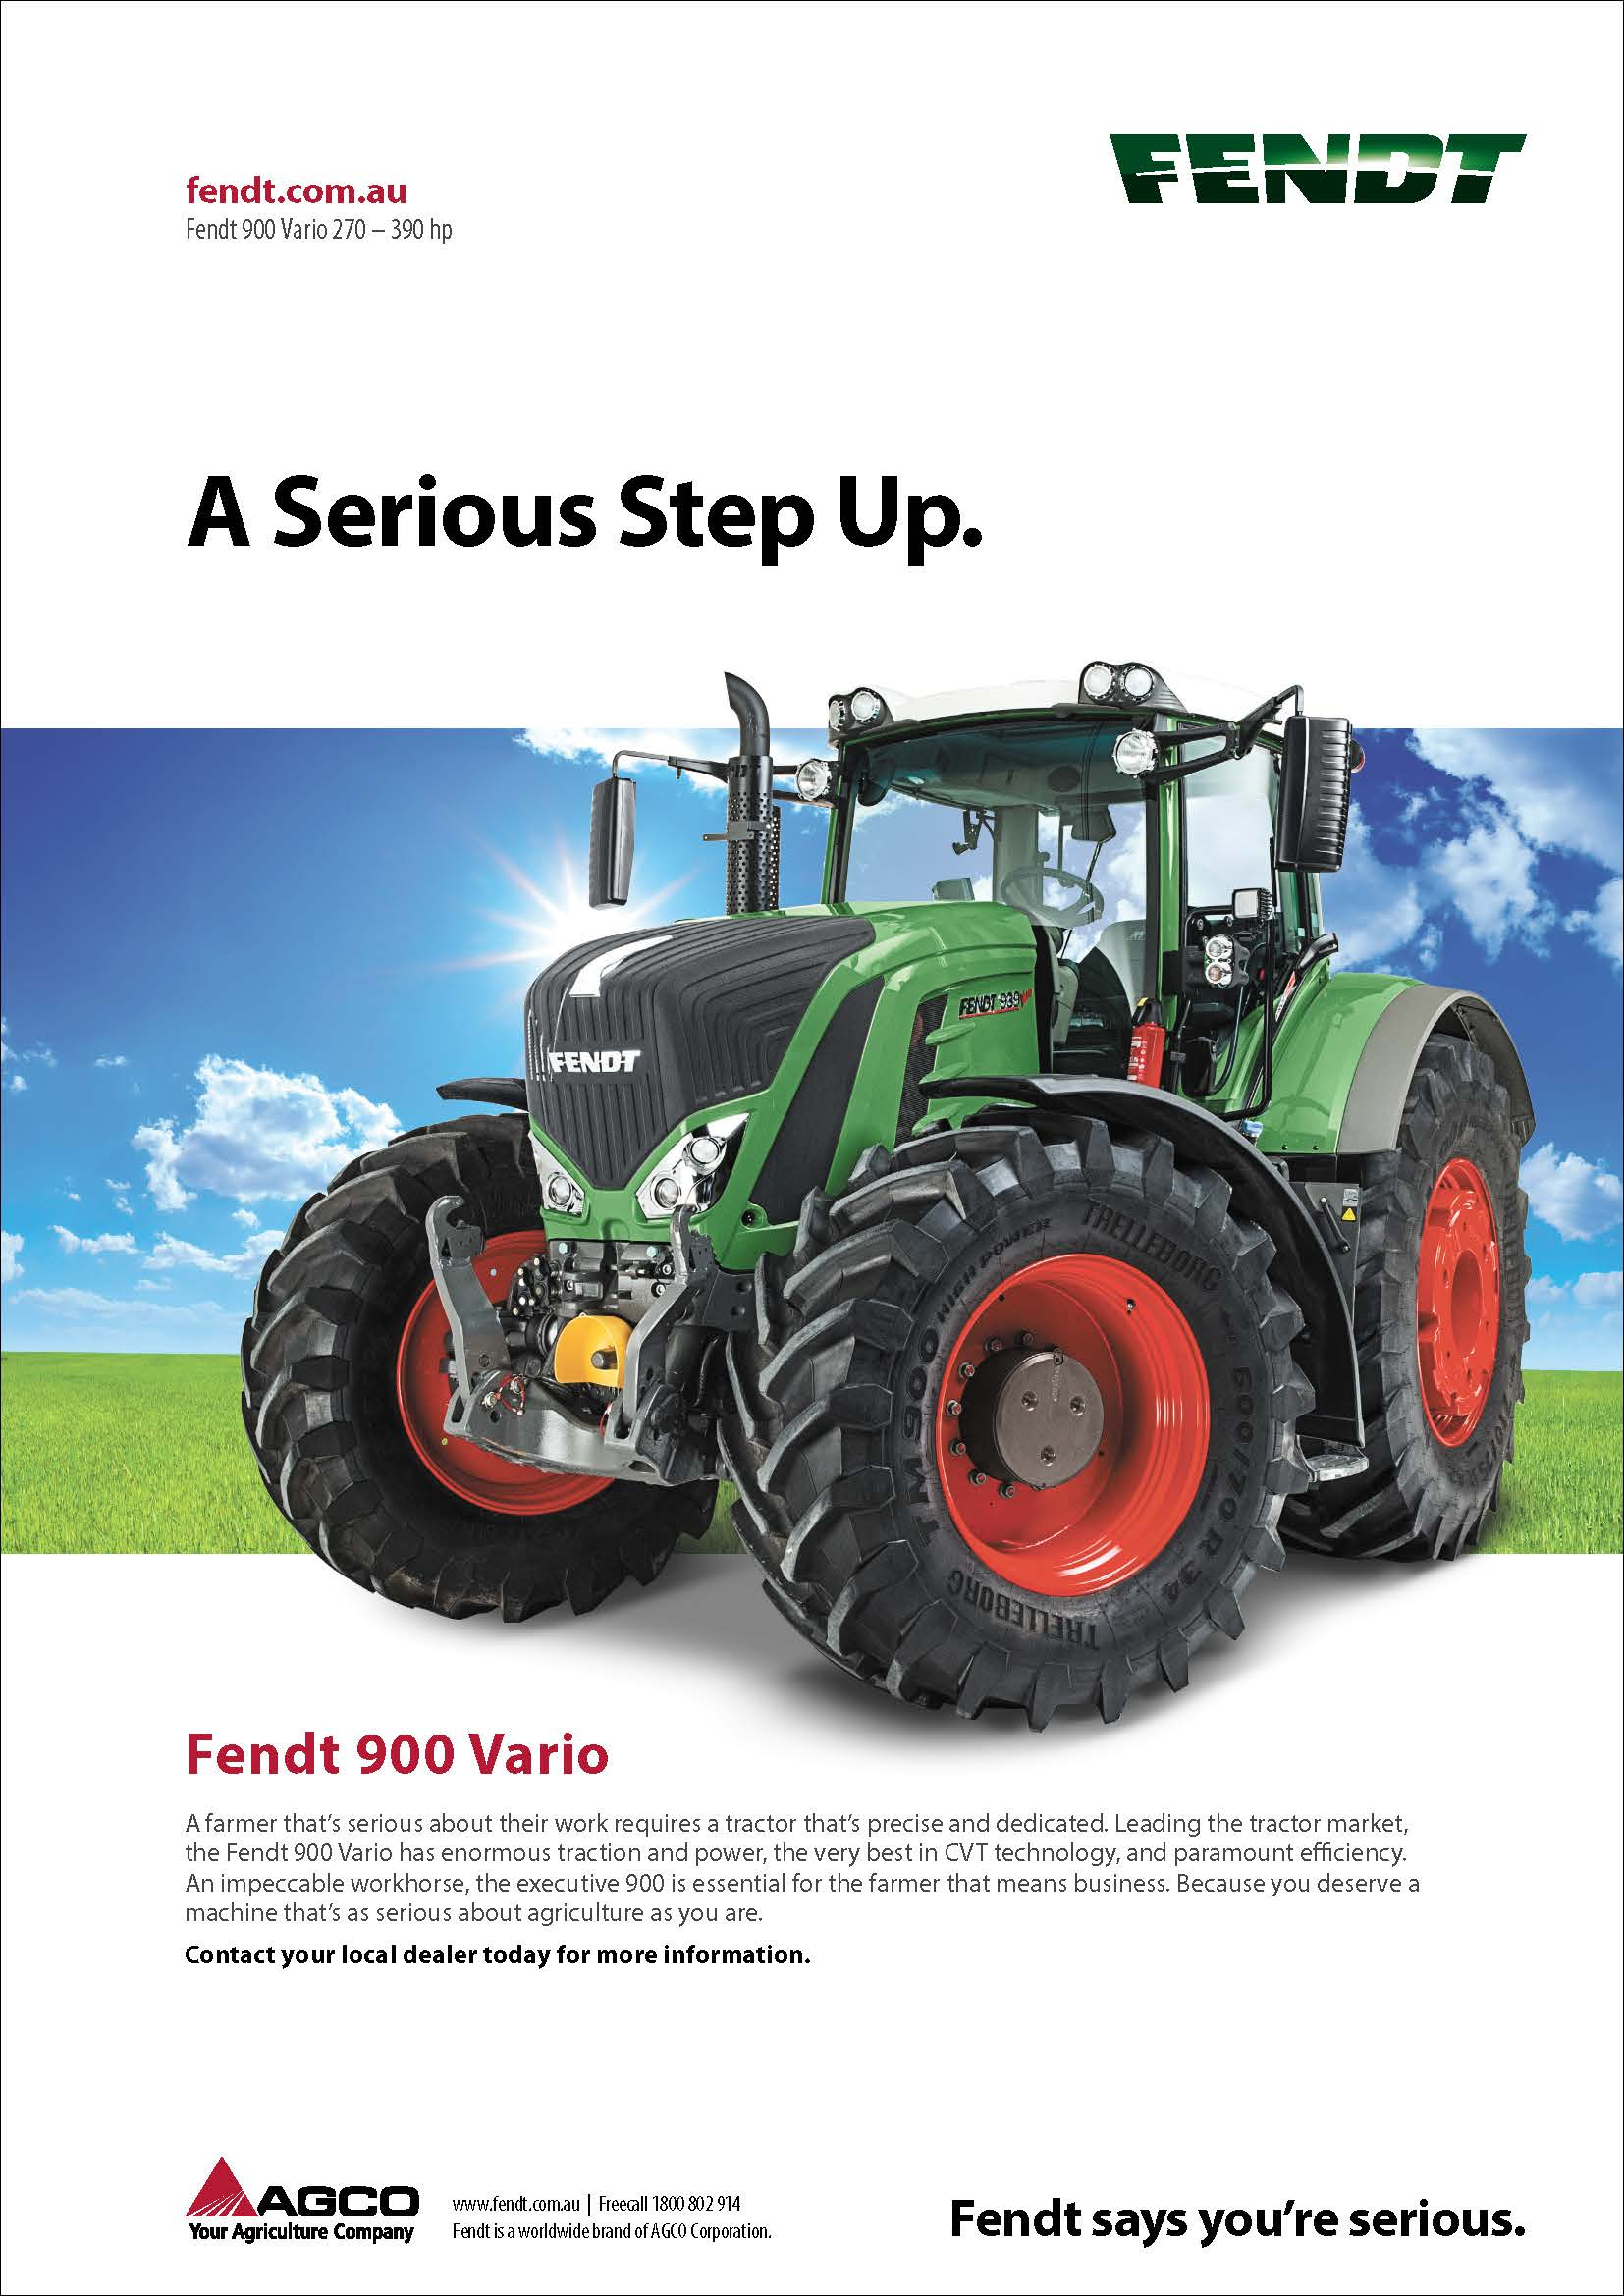 The Fendt 900 Series